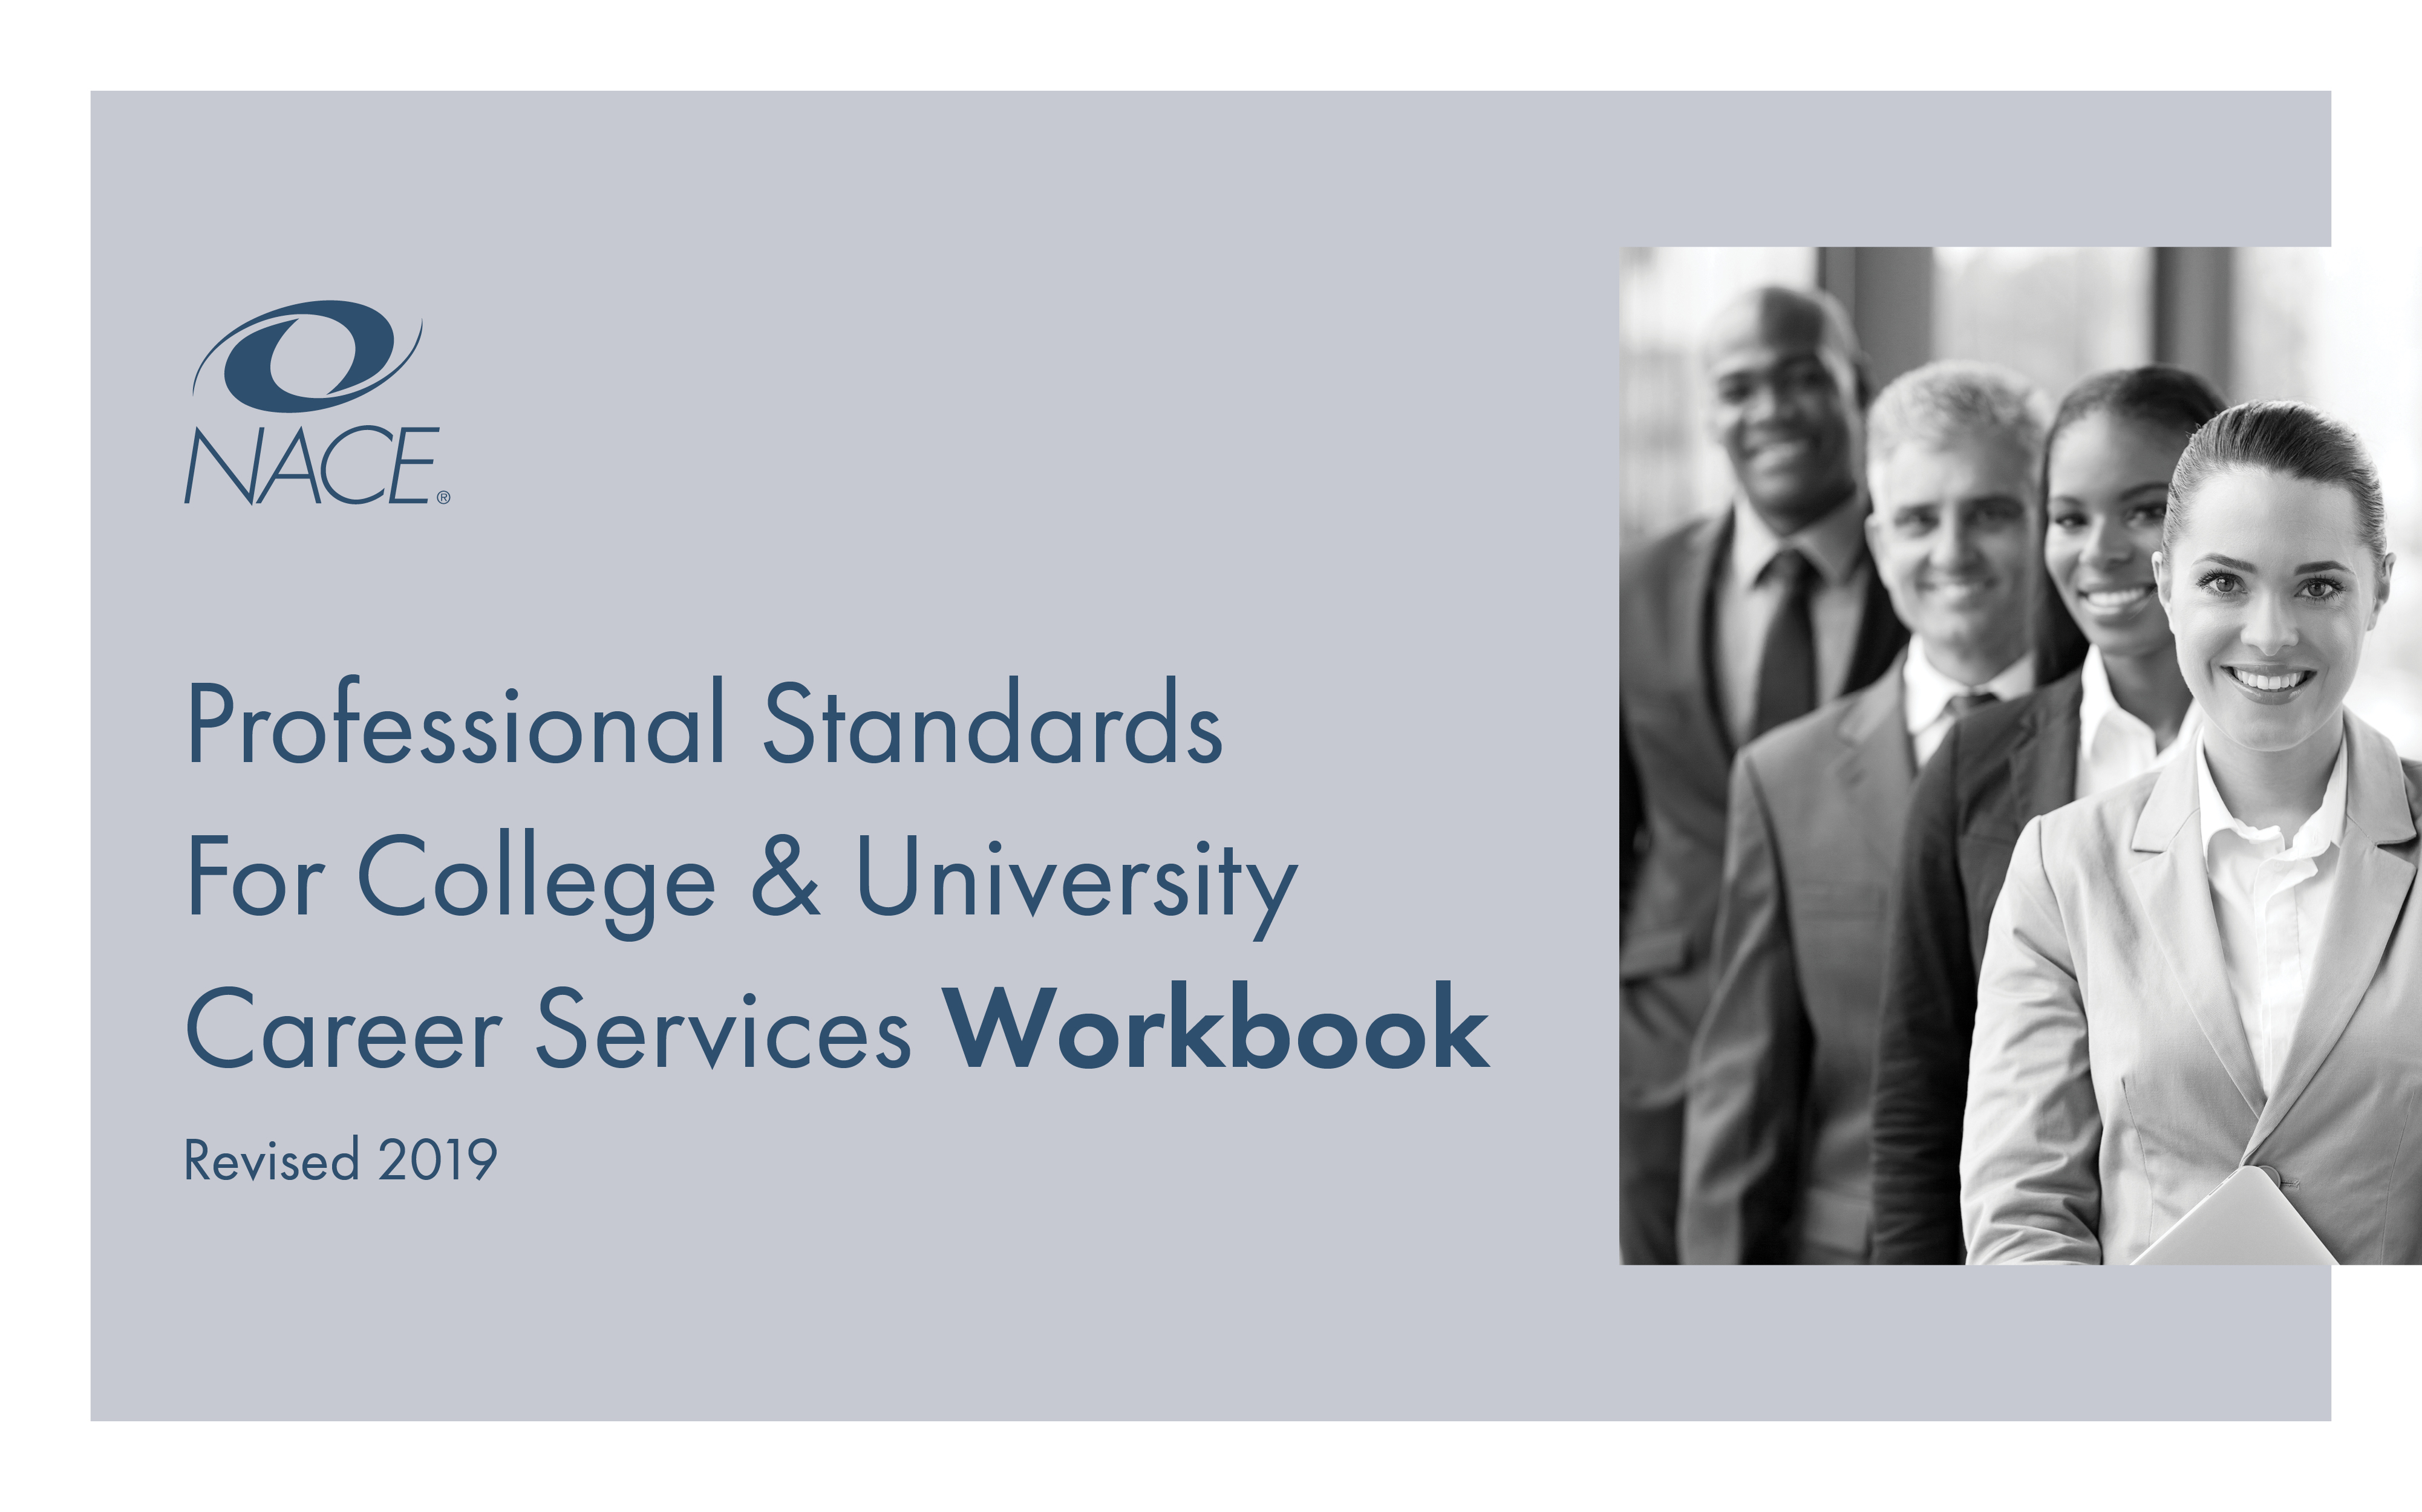 Professional Standards Workbook - NonMember